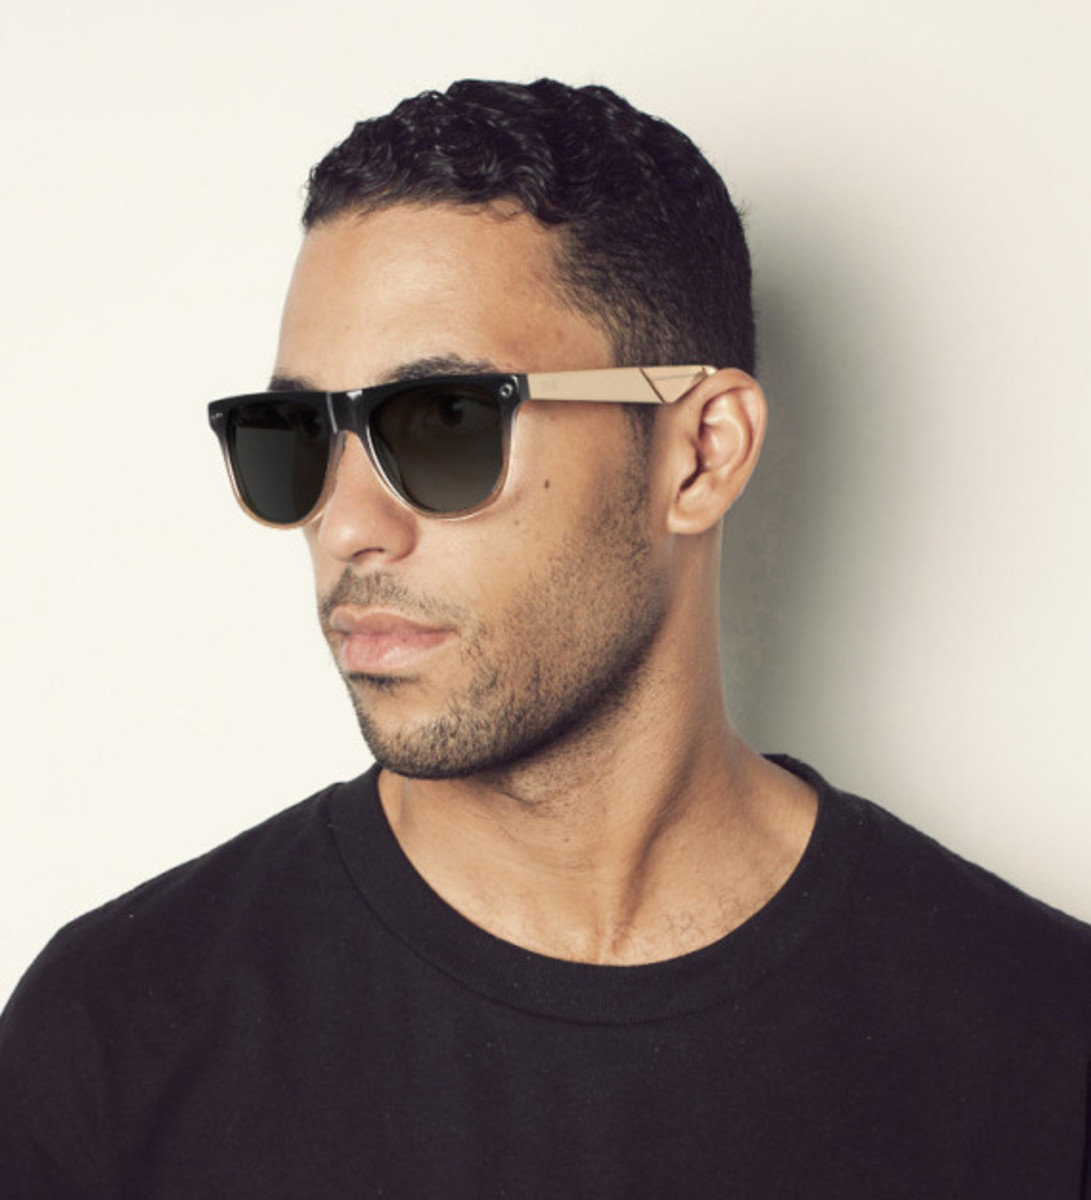 our-favorite-summer-sunglasses-streetwear-edition-02